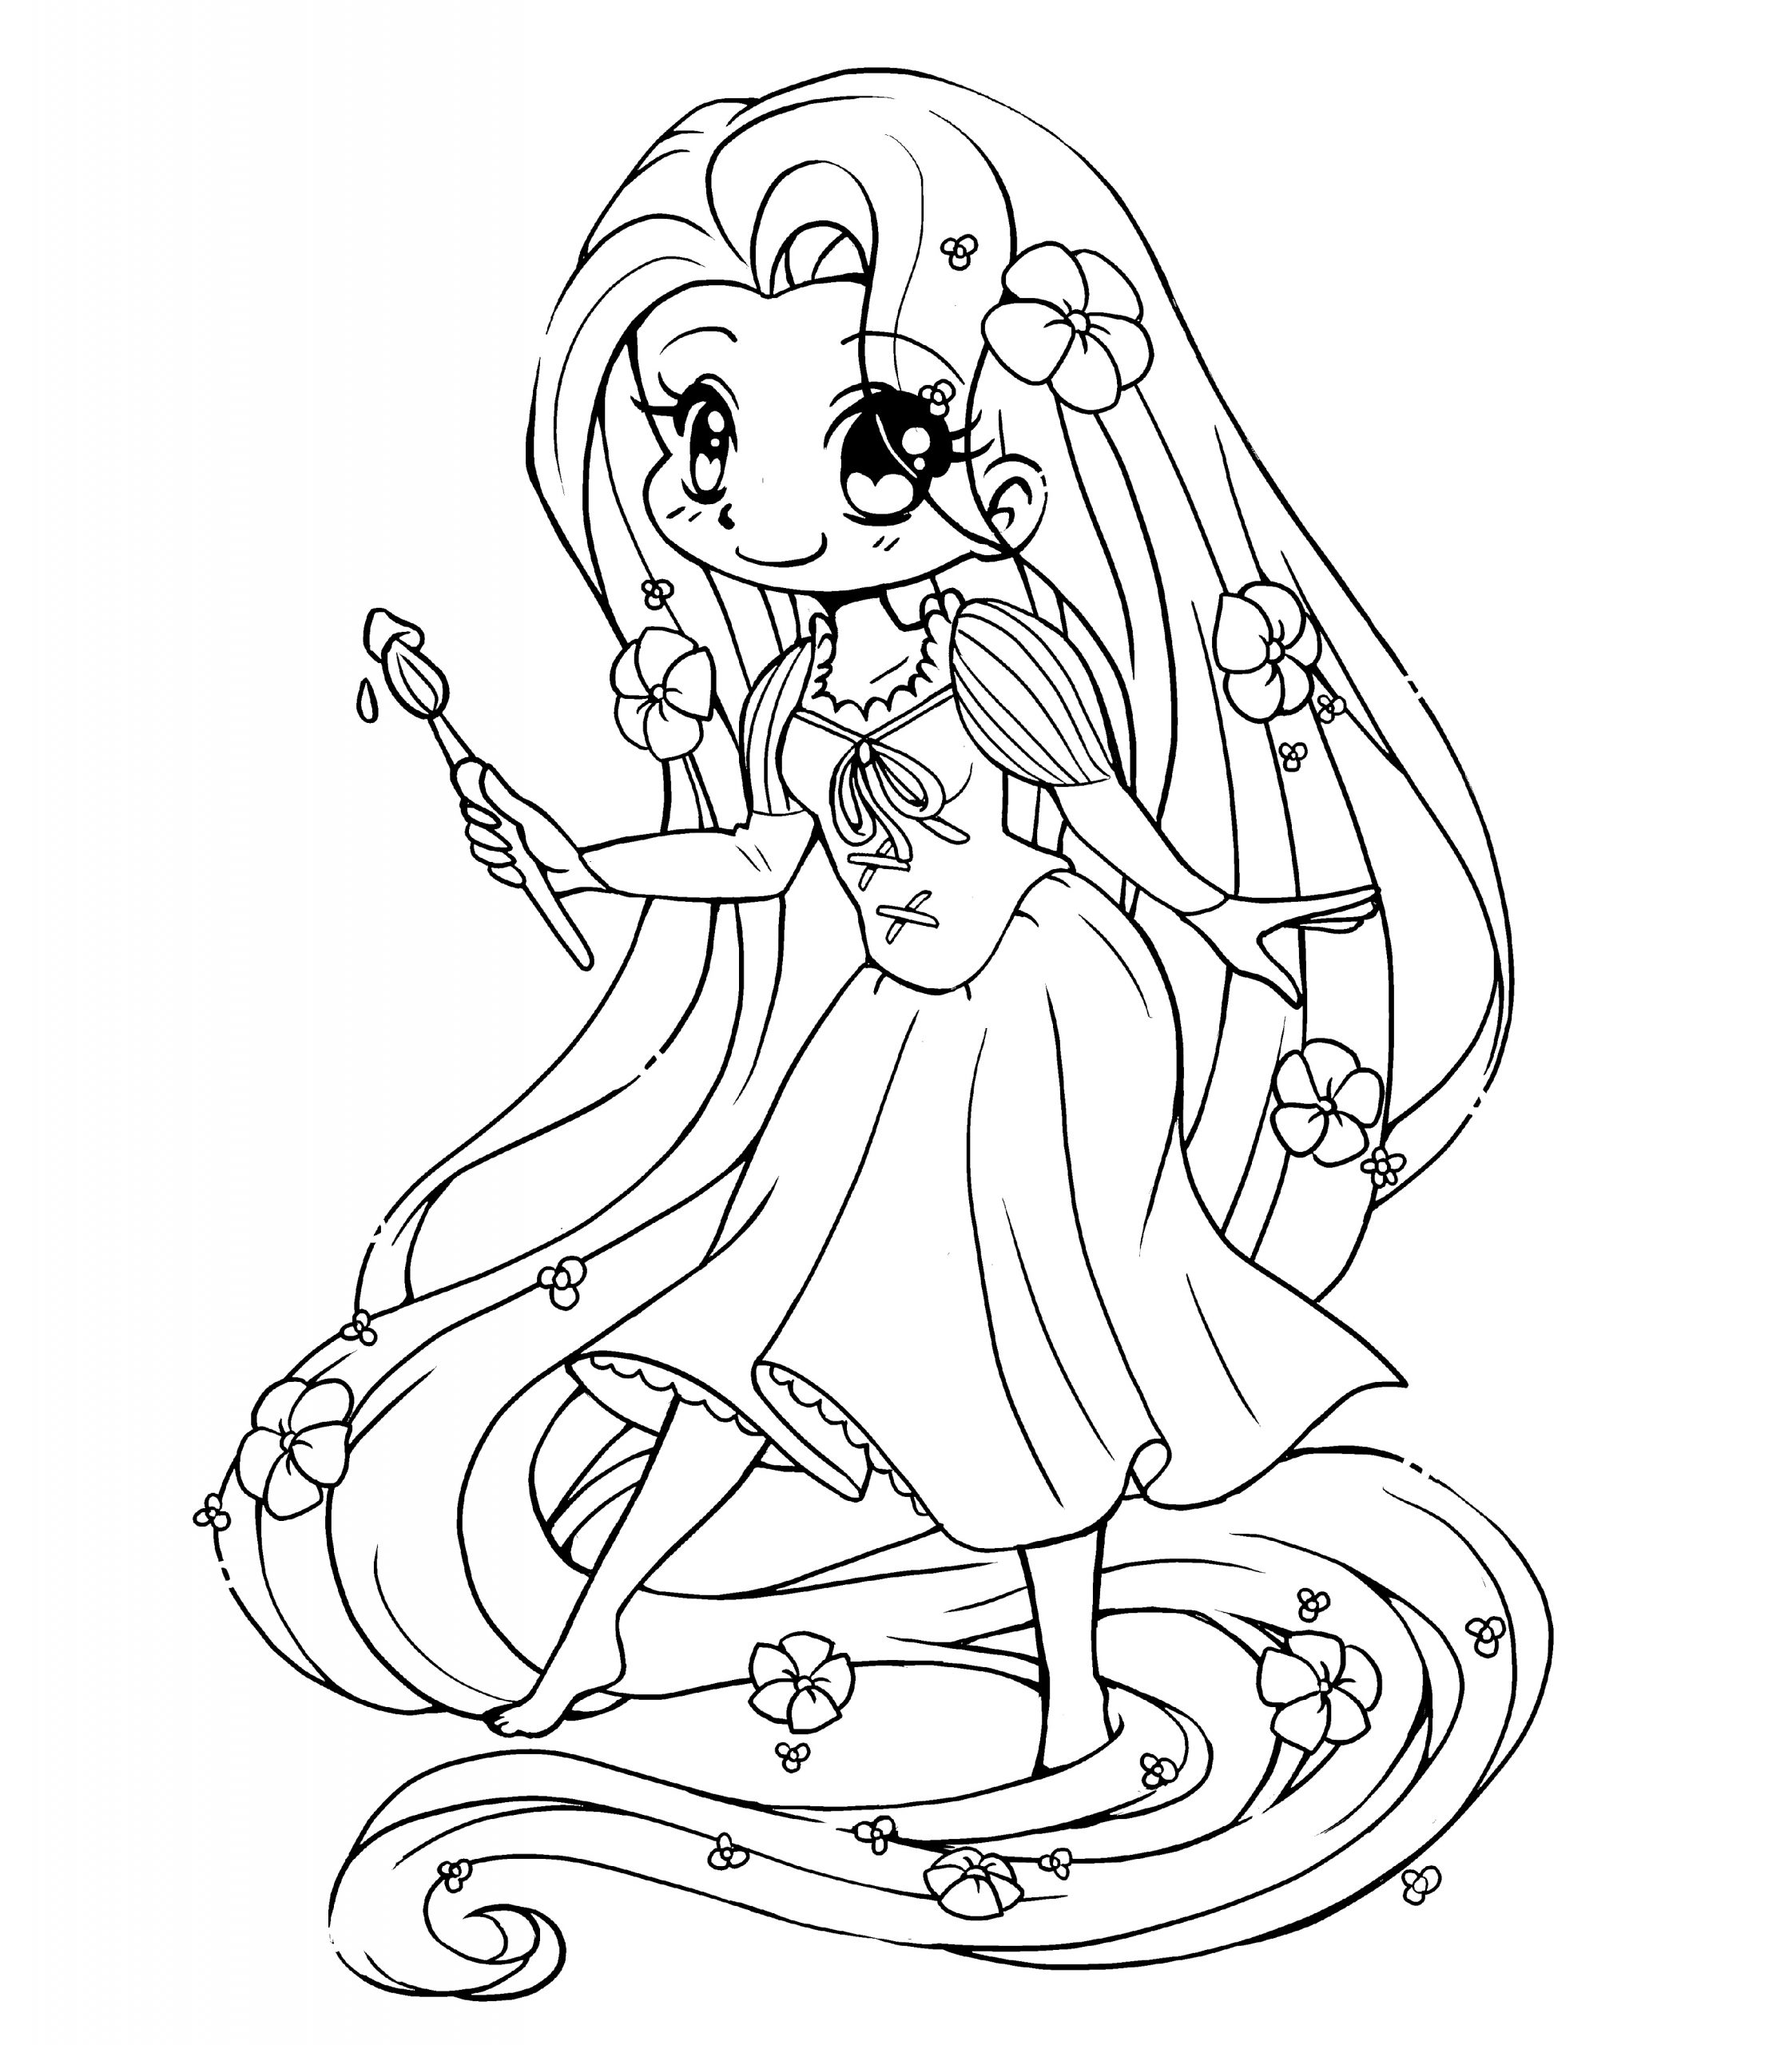 tangled for coloring free printable tangled coloring pages for kids cool2bkids coloring tangled for